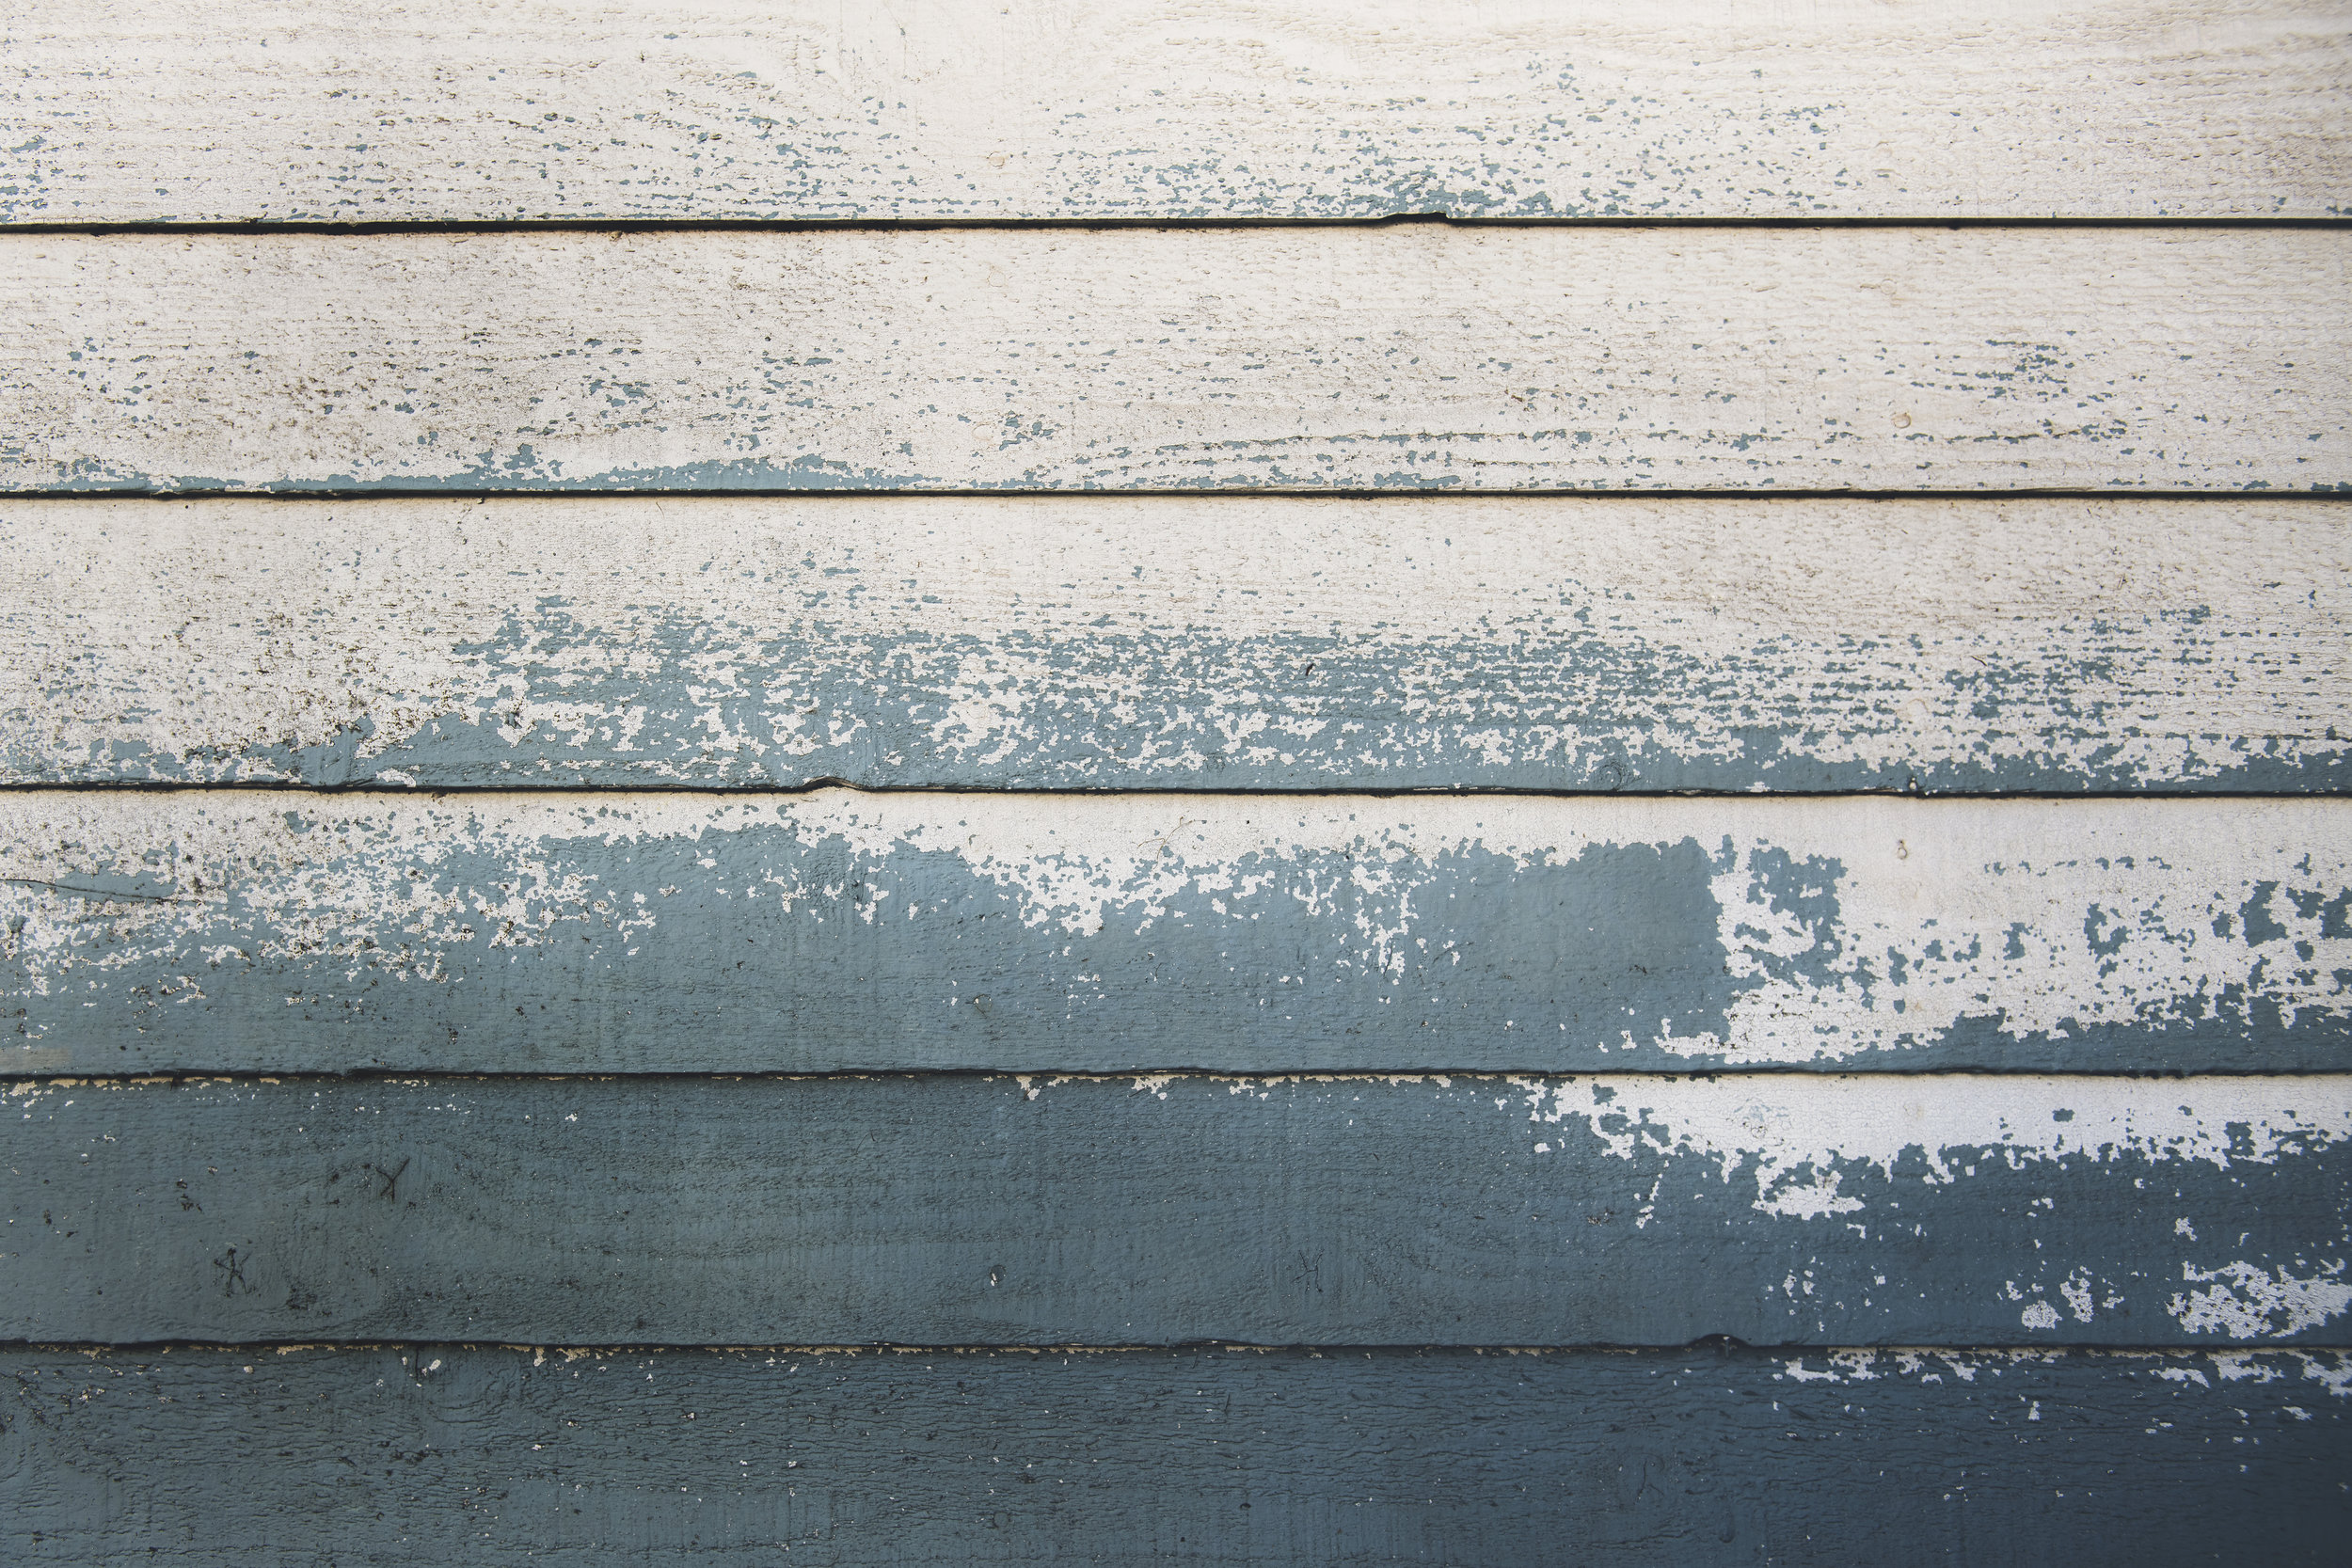 Siding issues? Square Deal has you covered. -